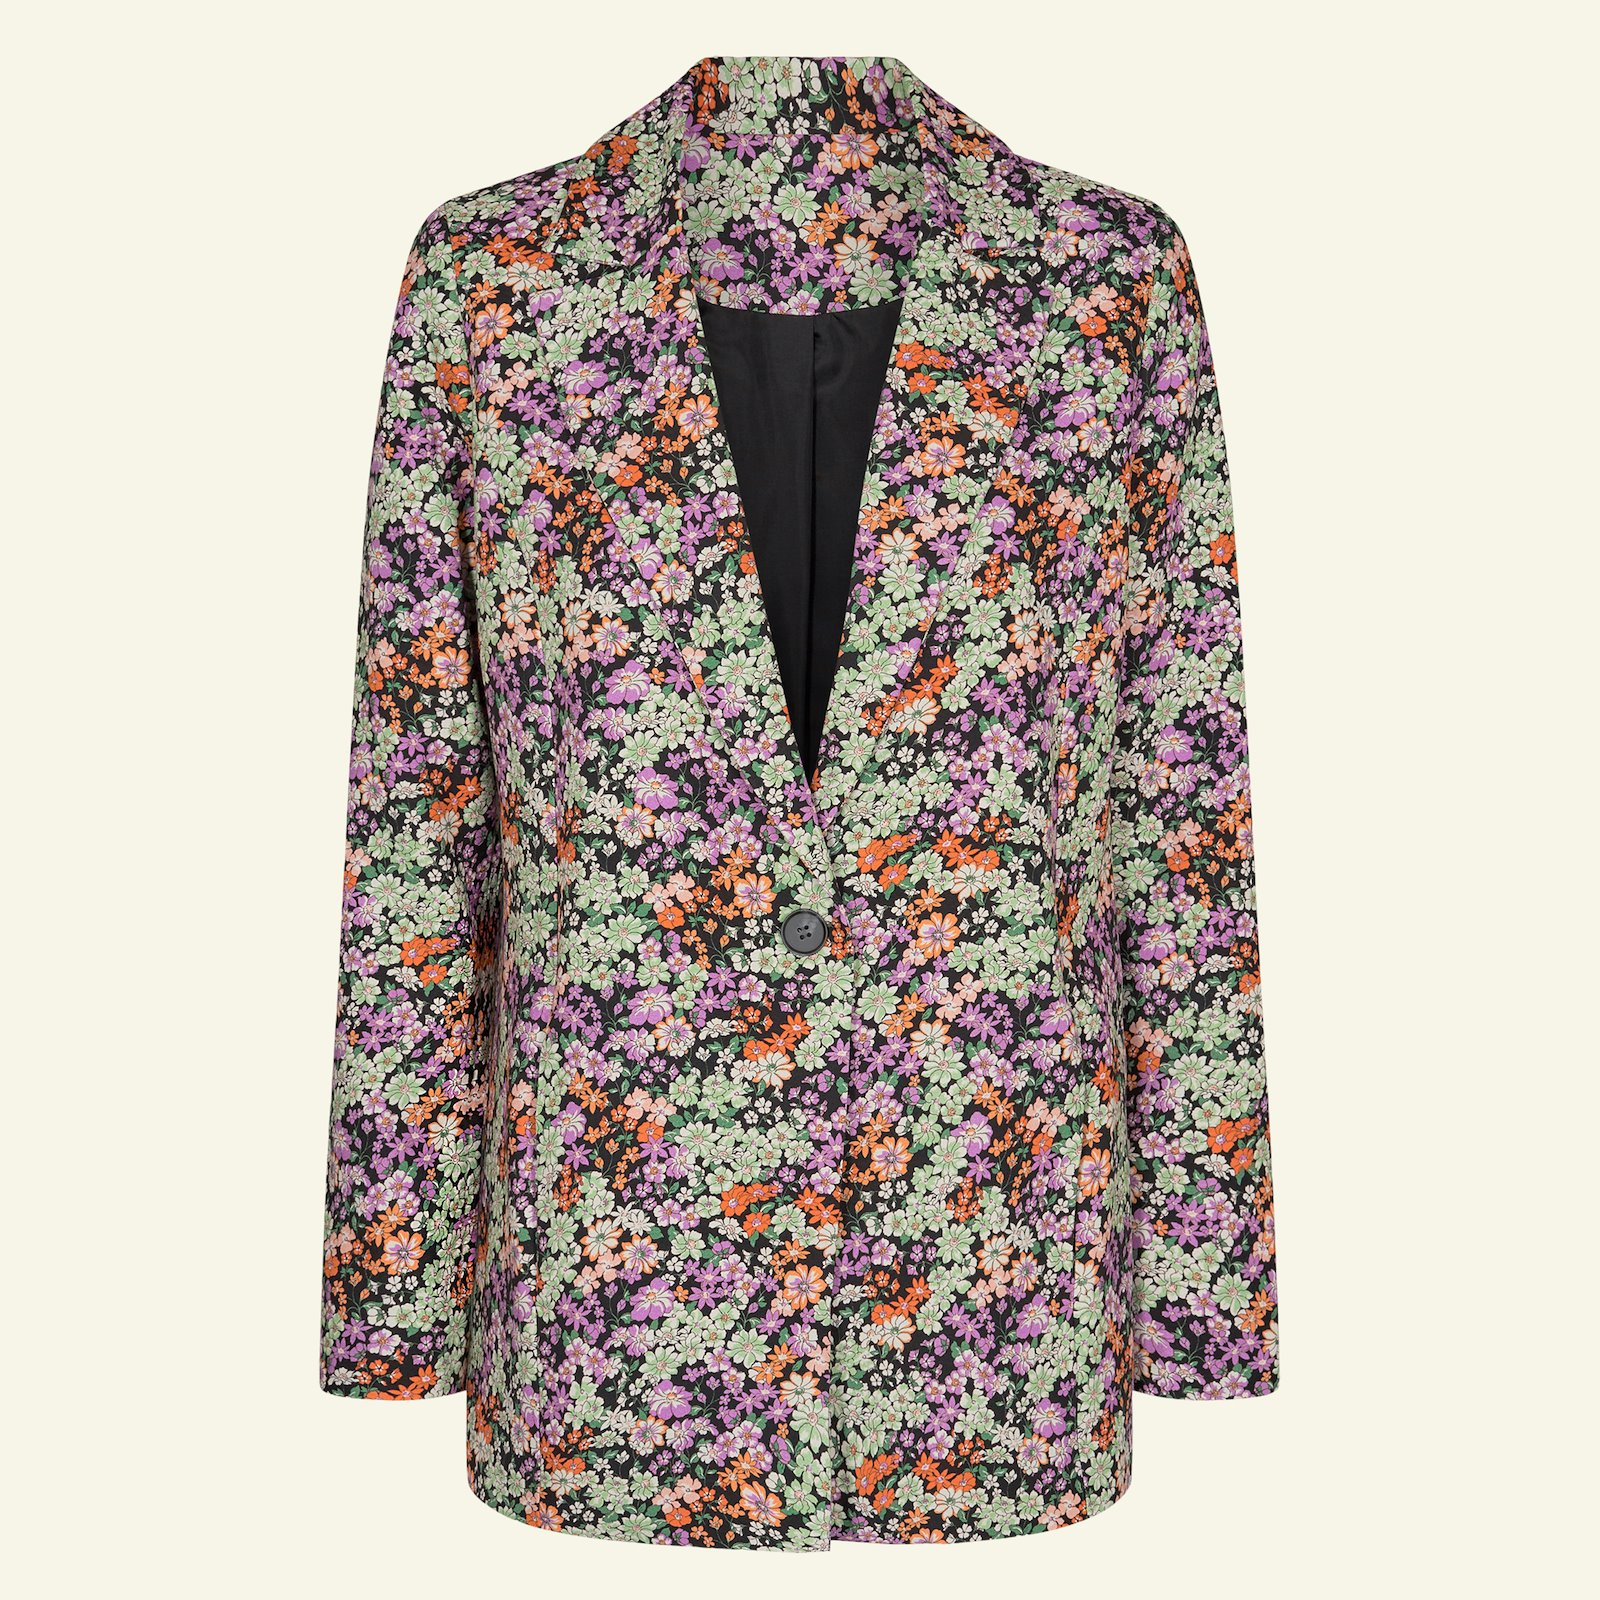 Suit jacket with lining p24048_701083_5043_40237_sskit